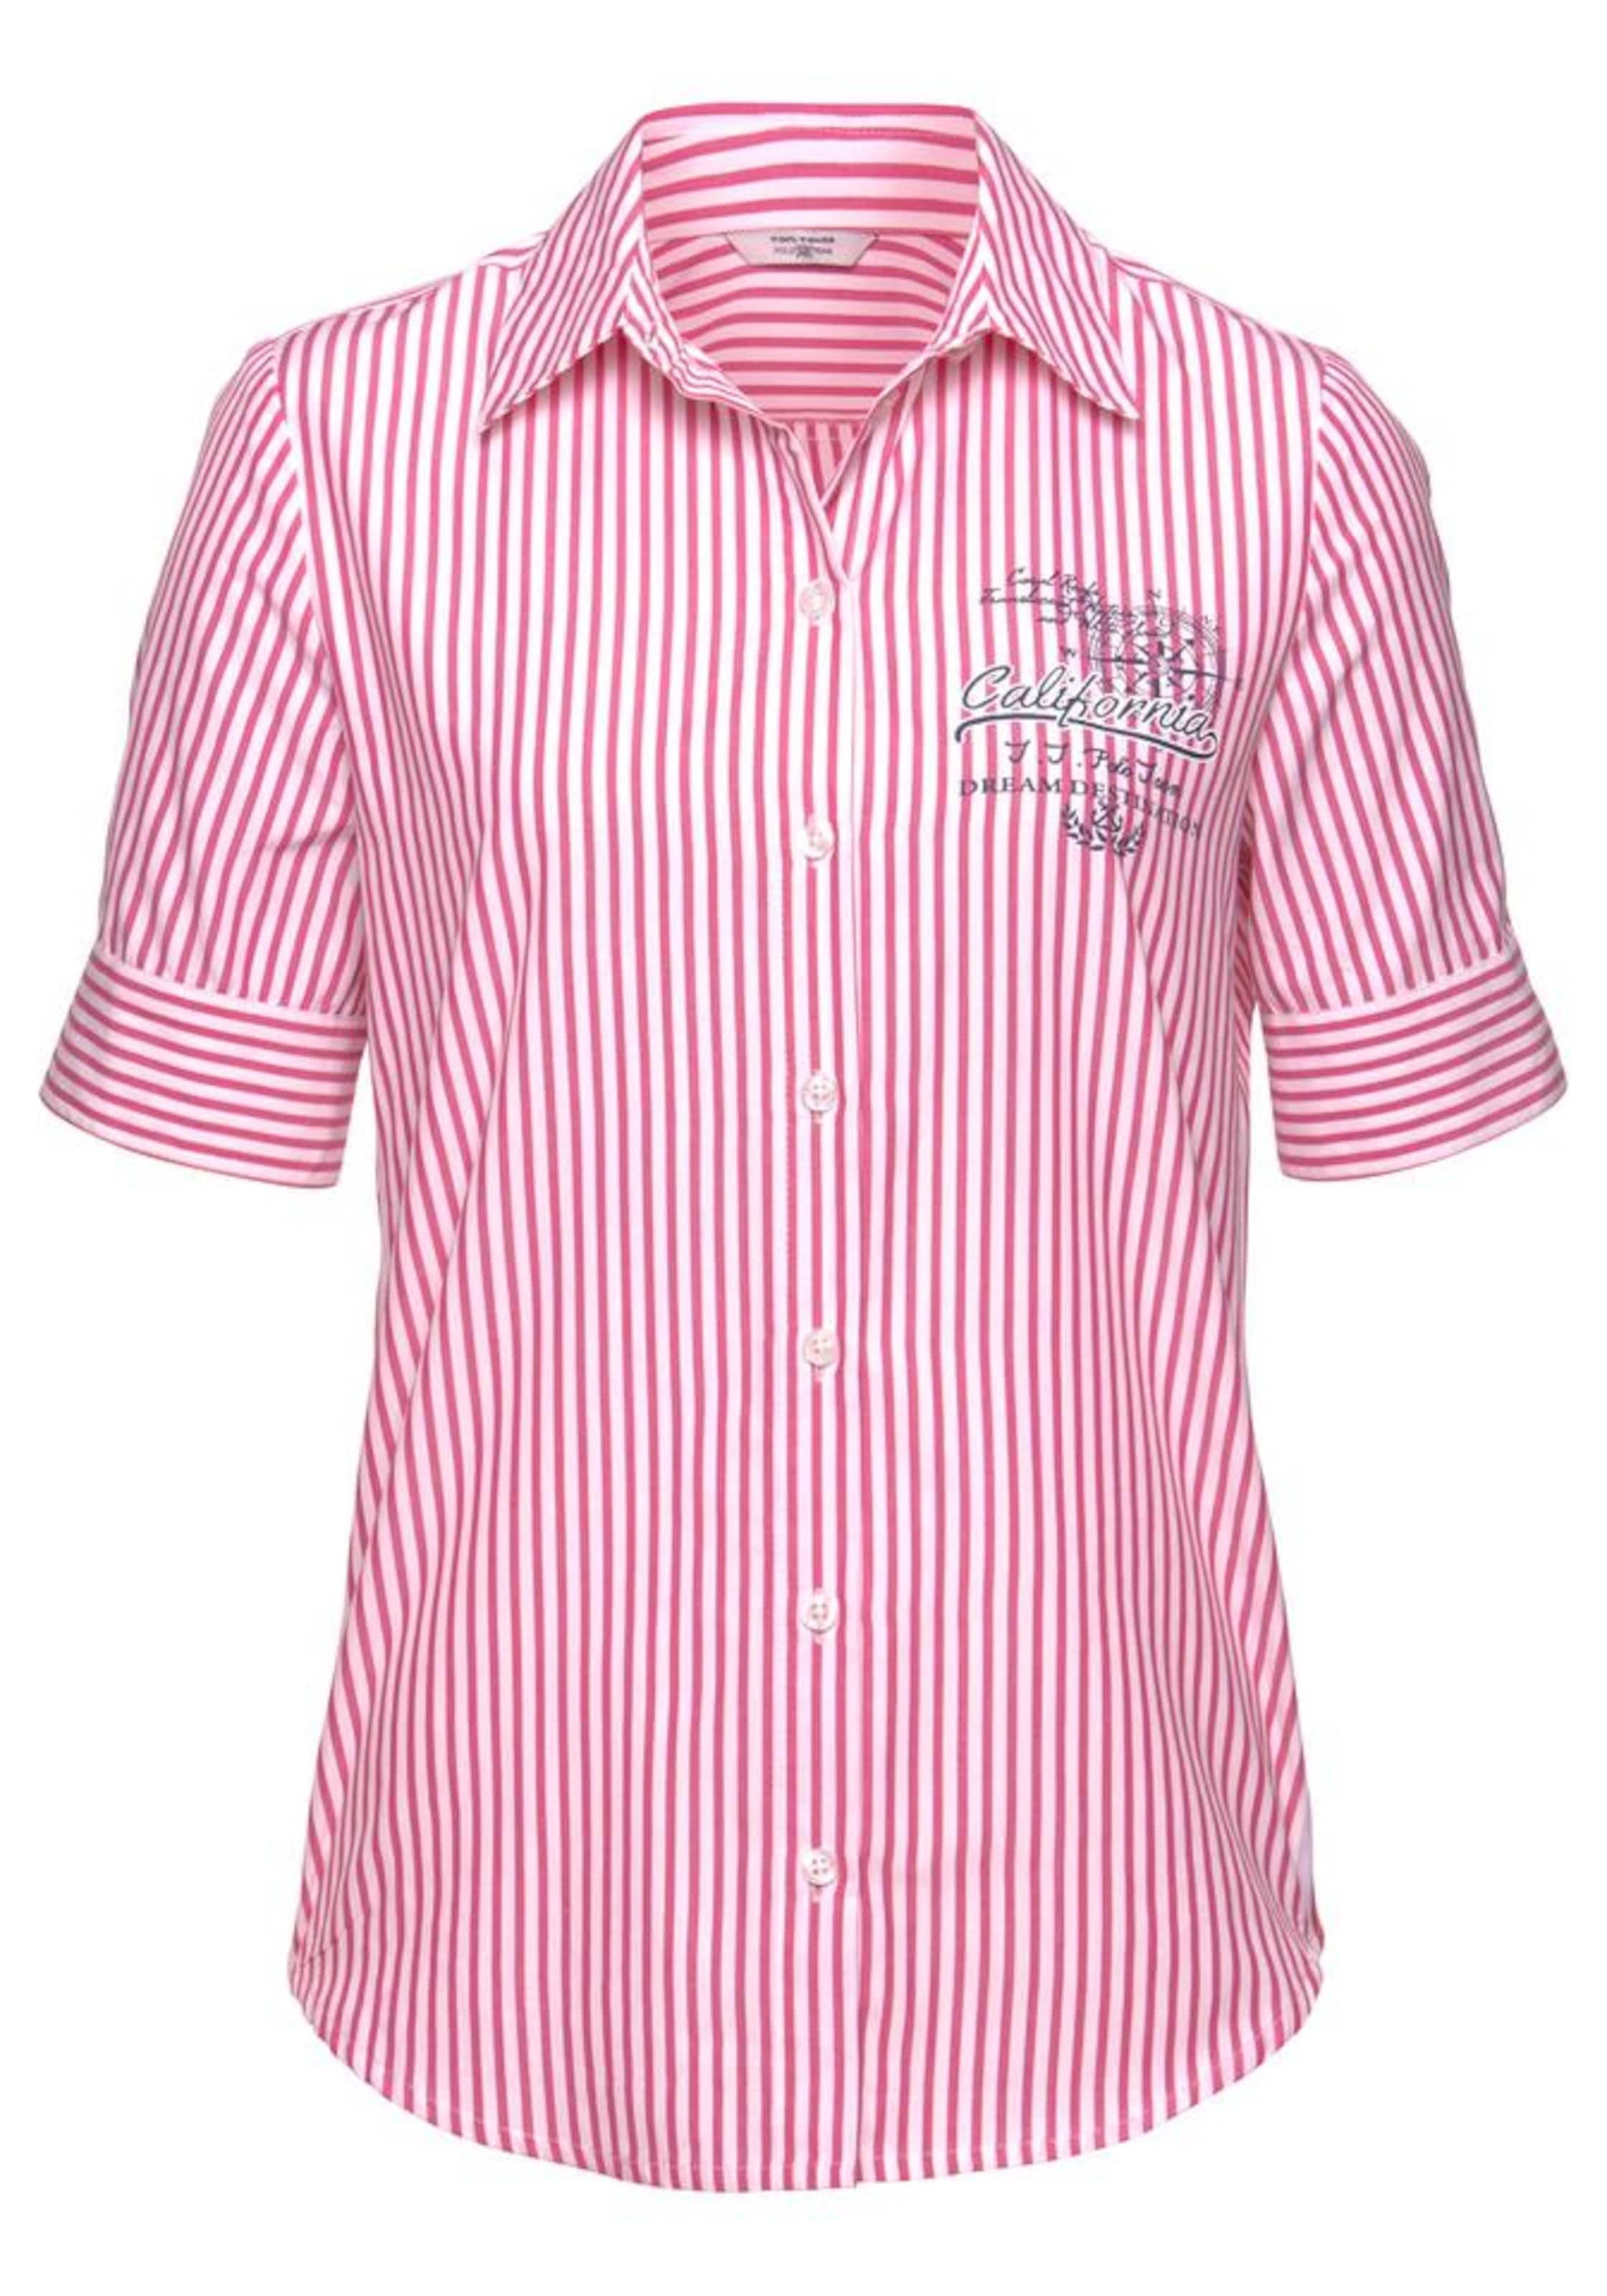 Tom In Hemdbluse Tailor Polo Team Pink 7Y6Ifgybv